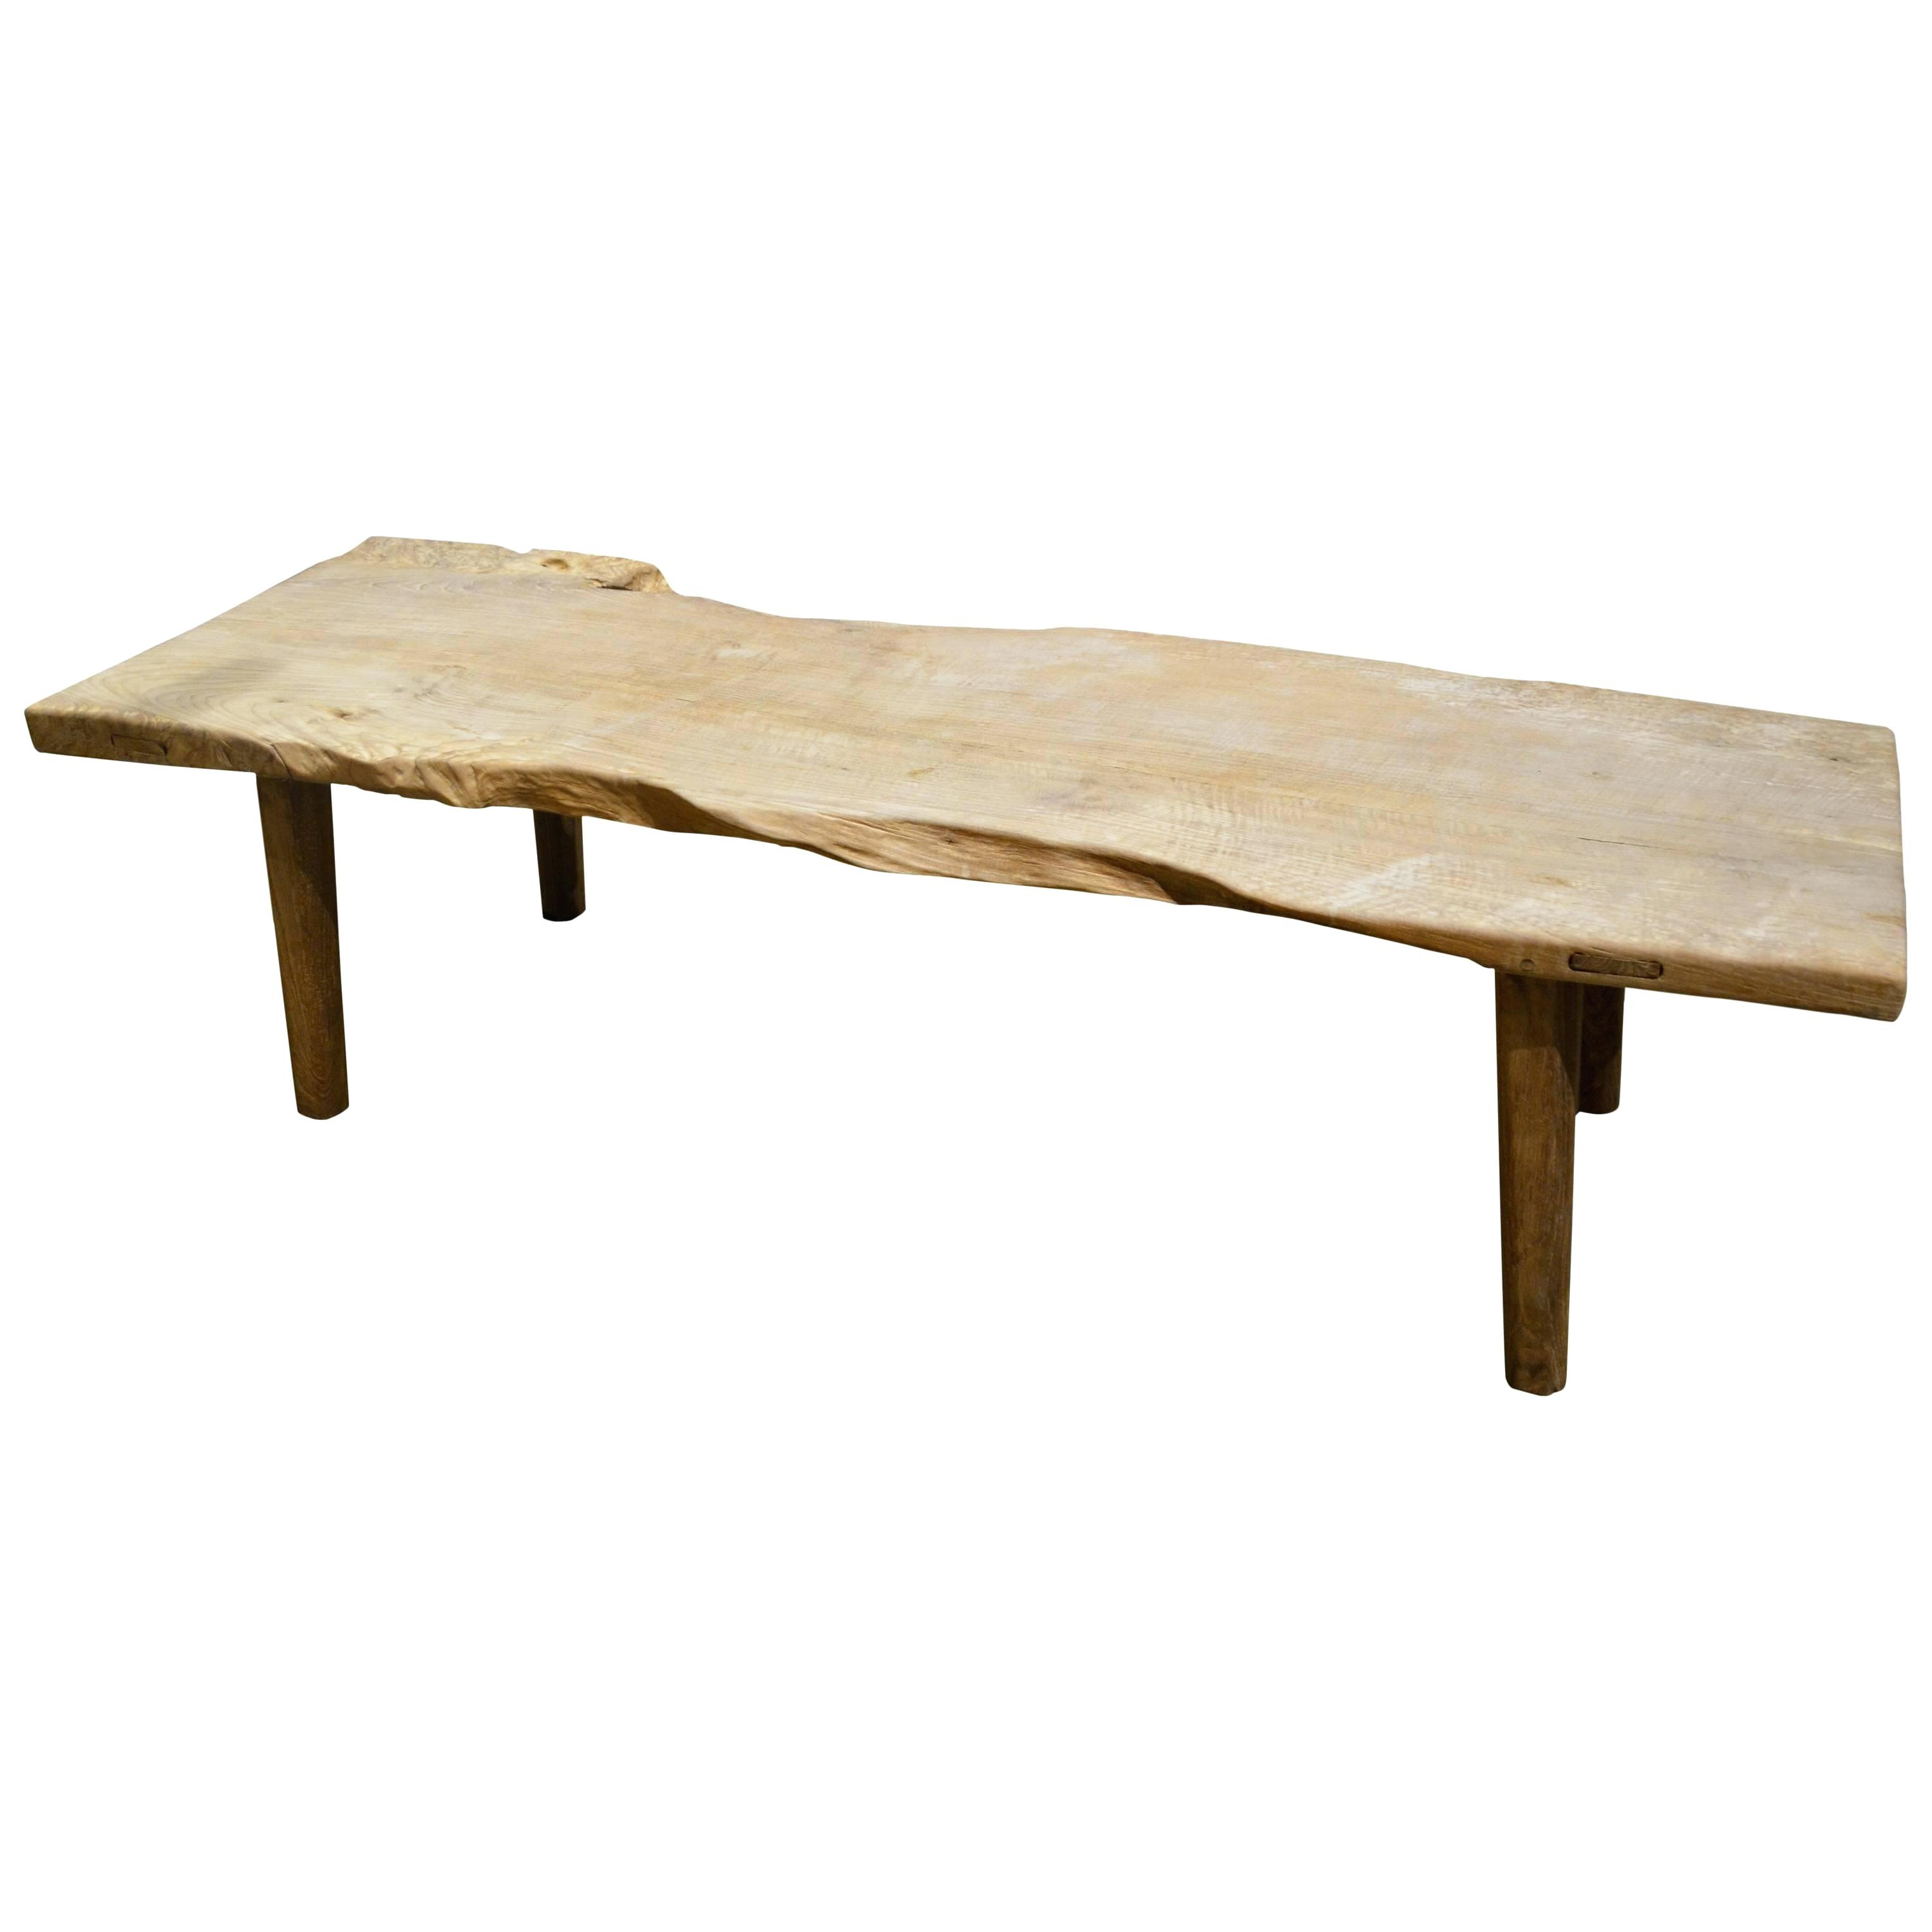 Live Edge Teak Coffee Tables Pertaining To Famous Teak Benches For Sale Live Edge Teak Wood Coffee Table Or Bench For (View 12 of 20)